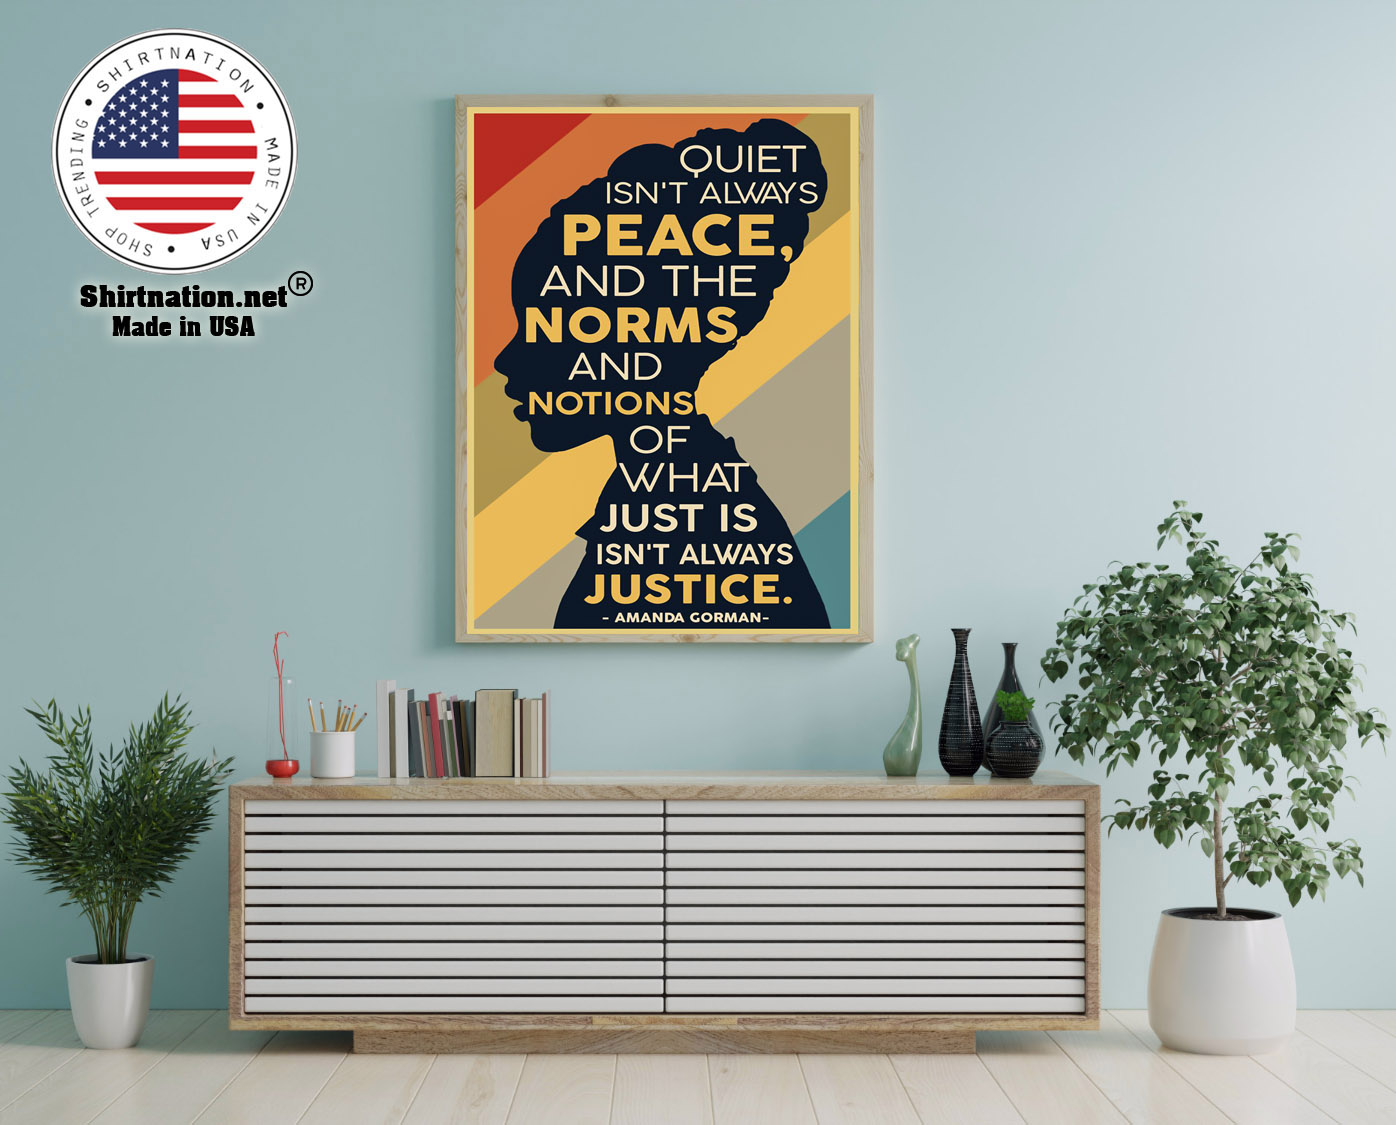 Amanda Gorman Quiet isnt always peace and the norm and notions of what just is isnt always justice poster 12